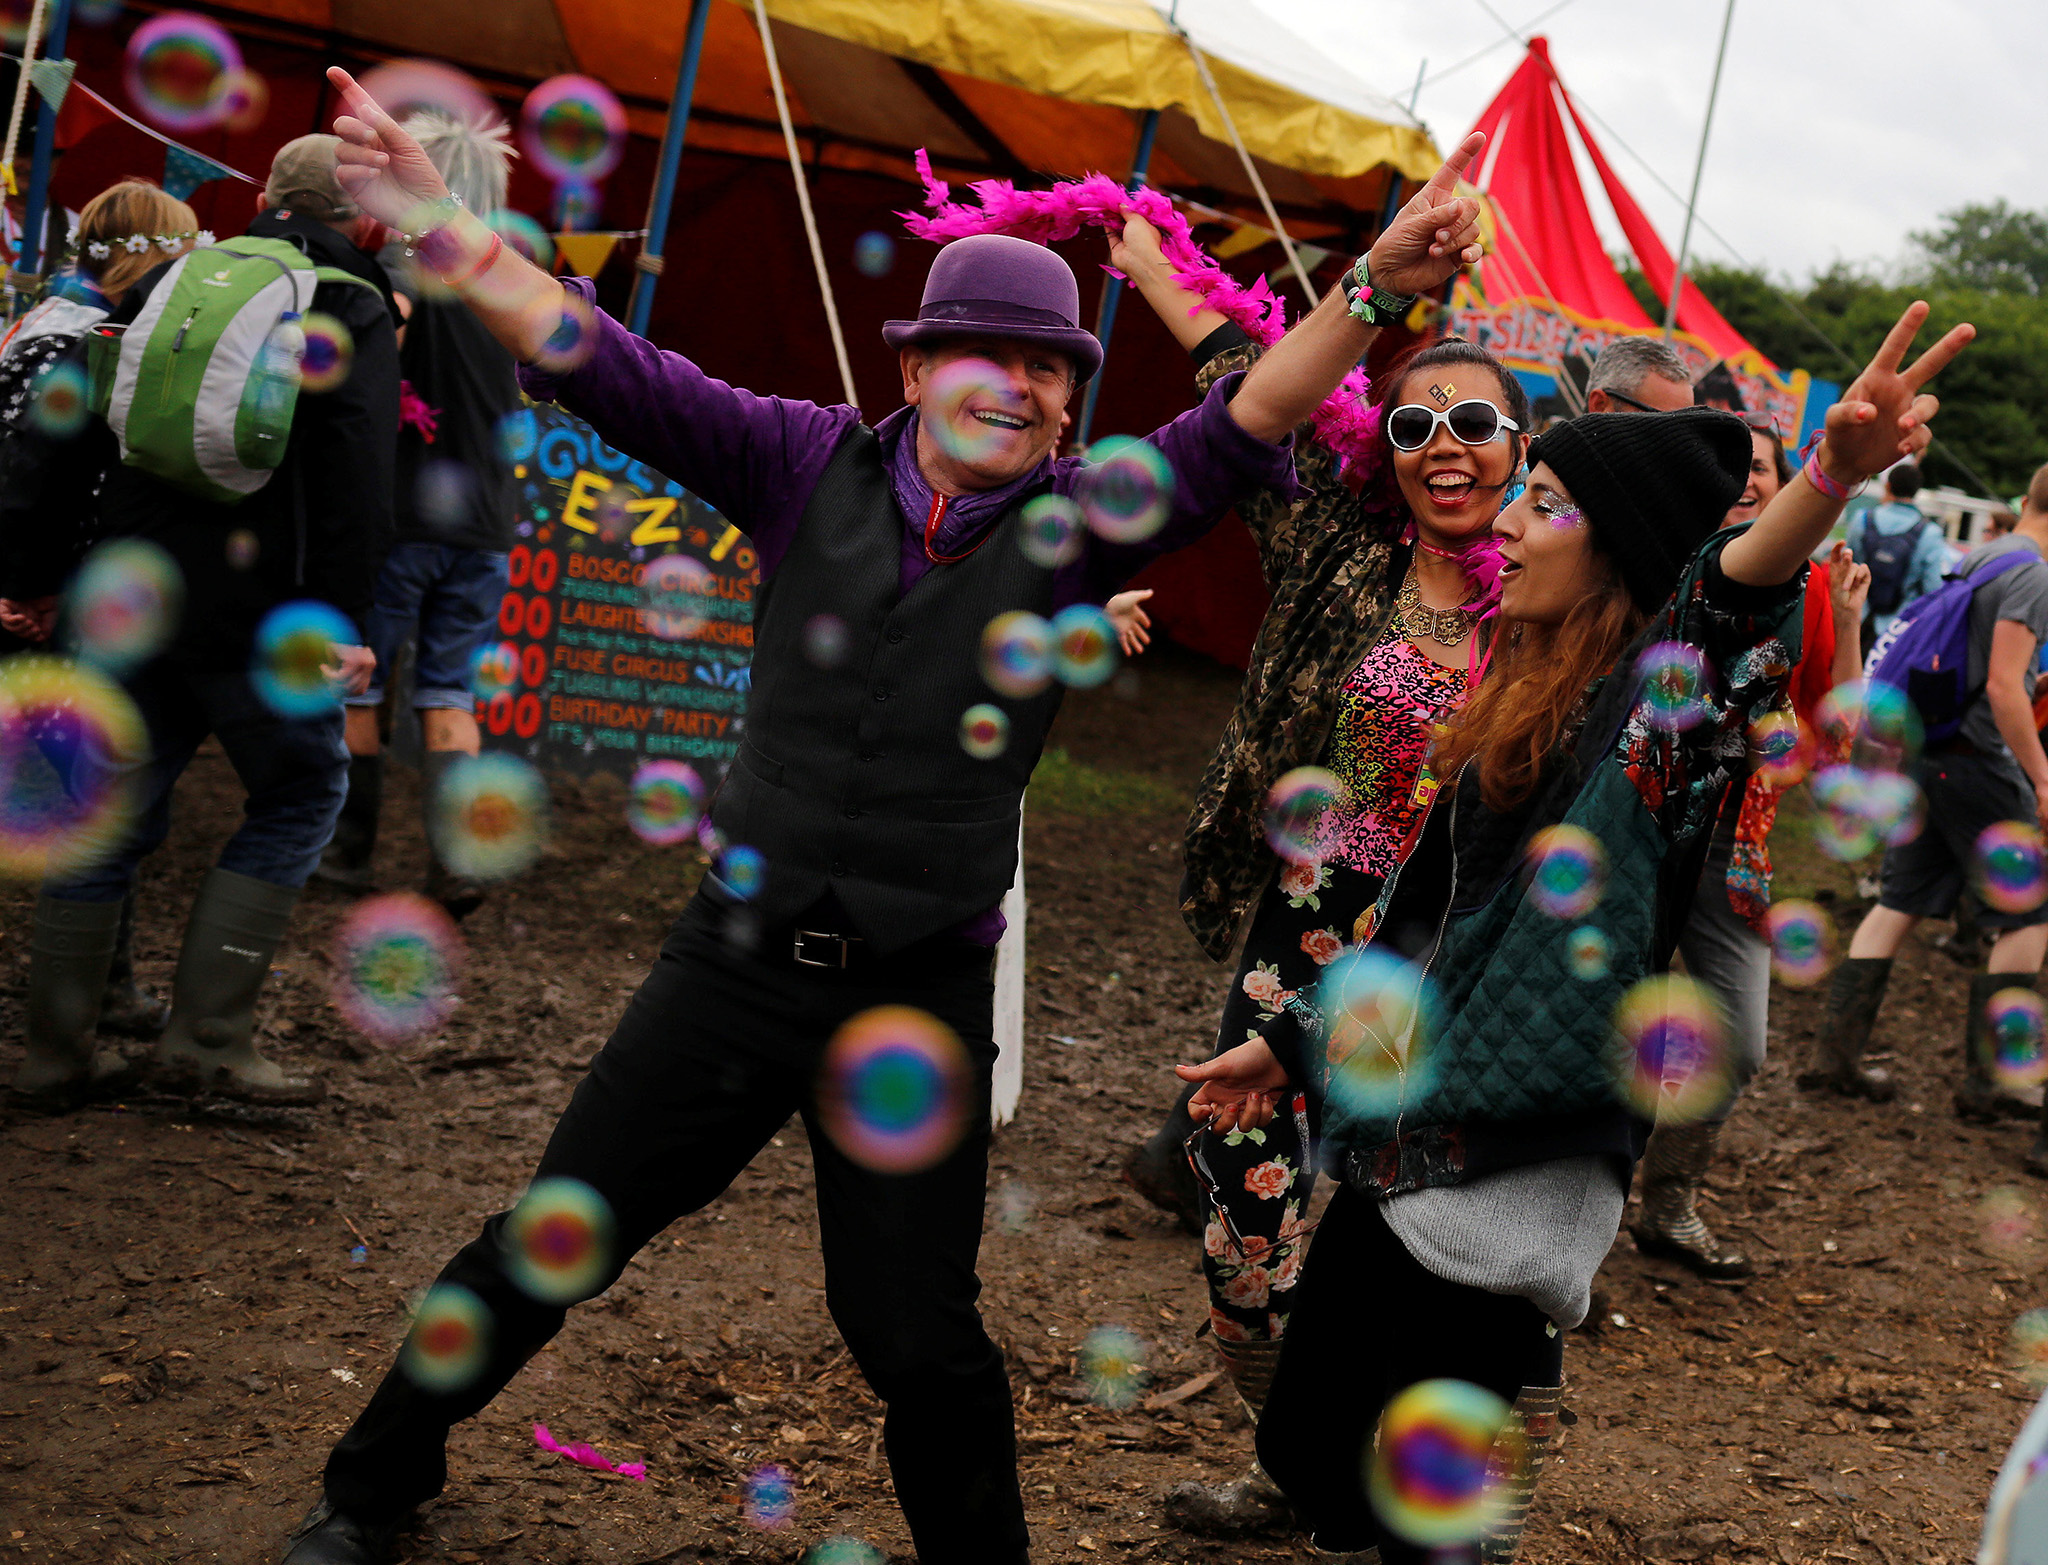 Revellers react while being photographed at Worthy Farm in Somerset during the Glastonbury Festival, Britain